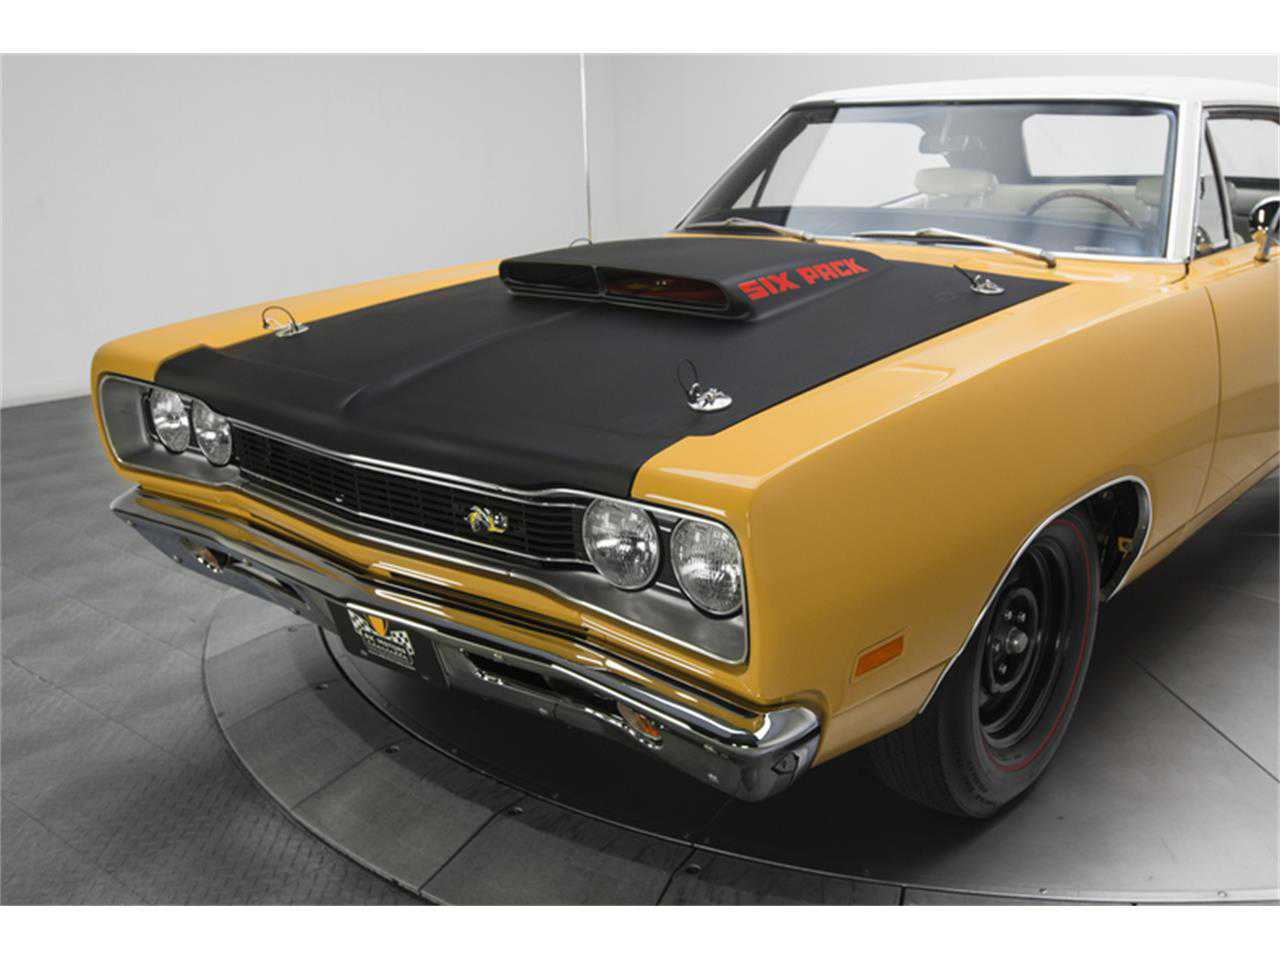 1969 Dodge Coronet A12 Super Bee for sale in Charlotte, NC